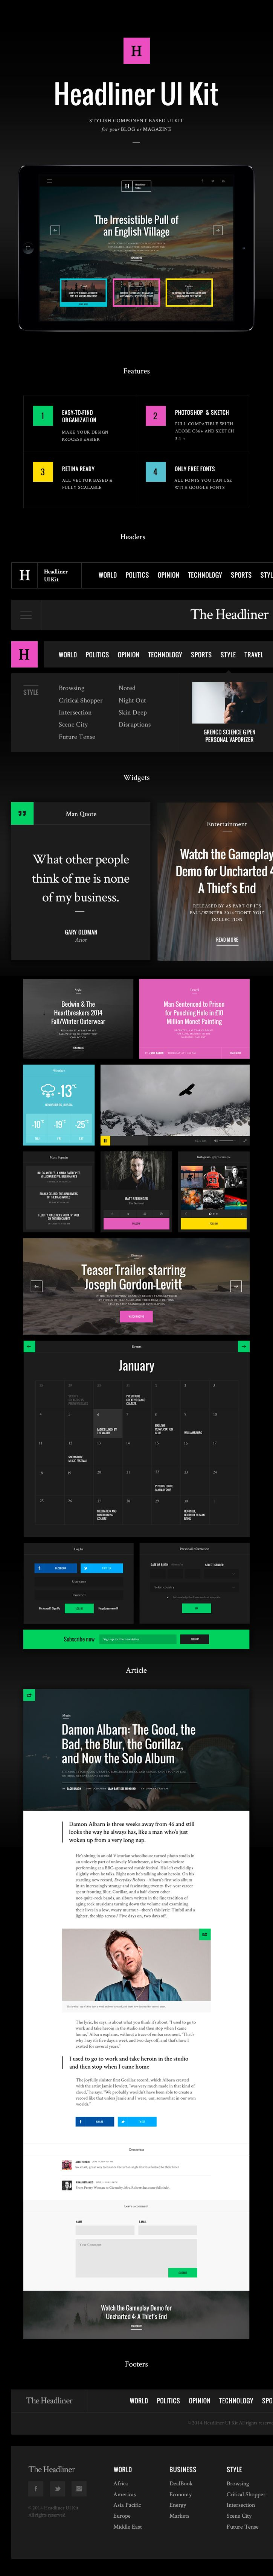 Headliner UI Kit - Web Elements - 3